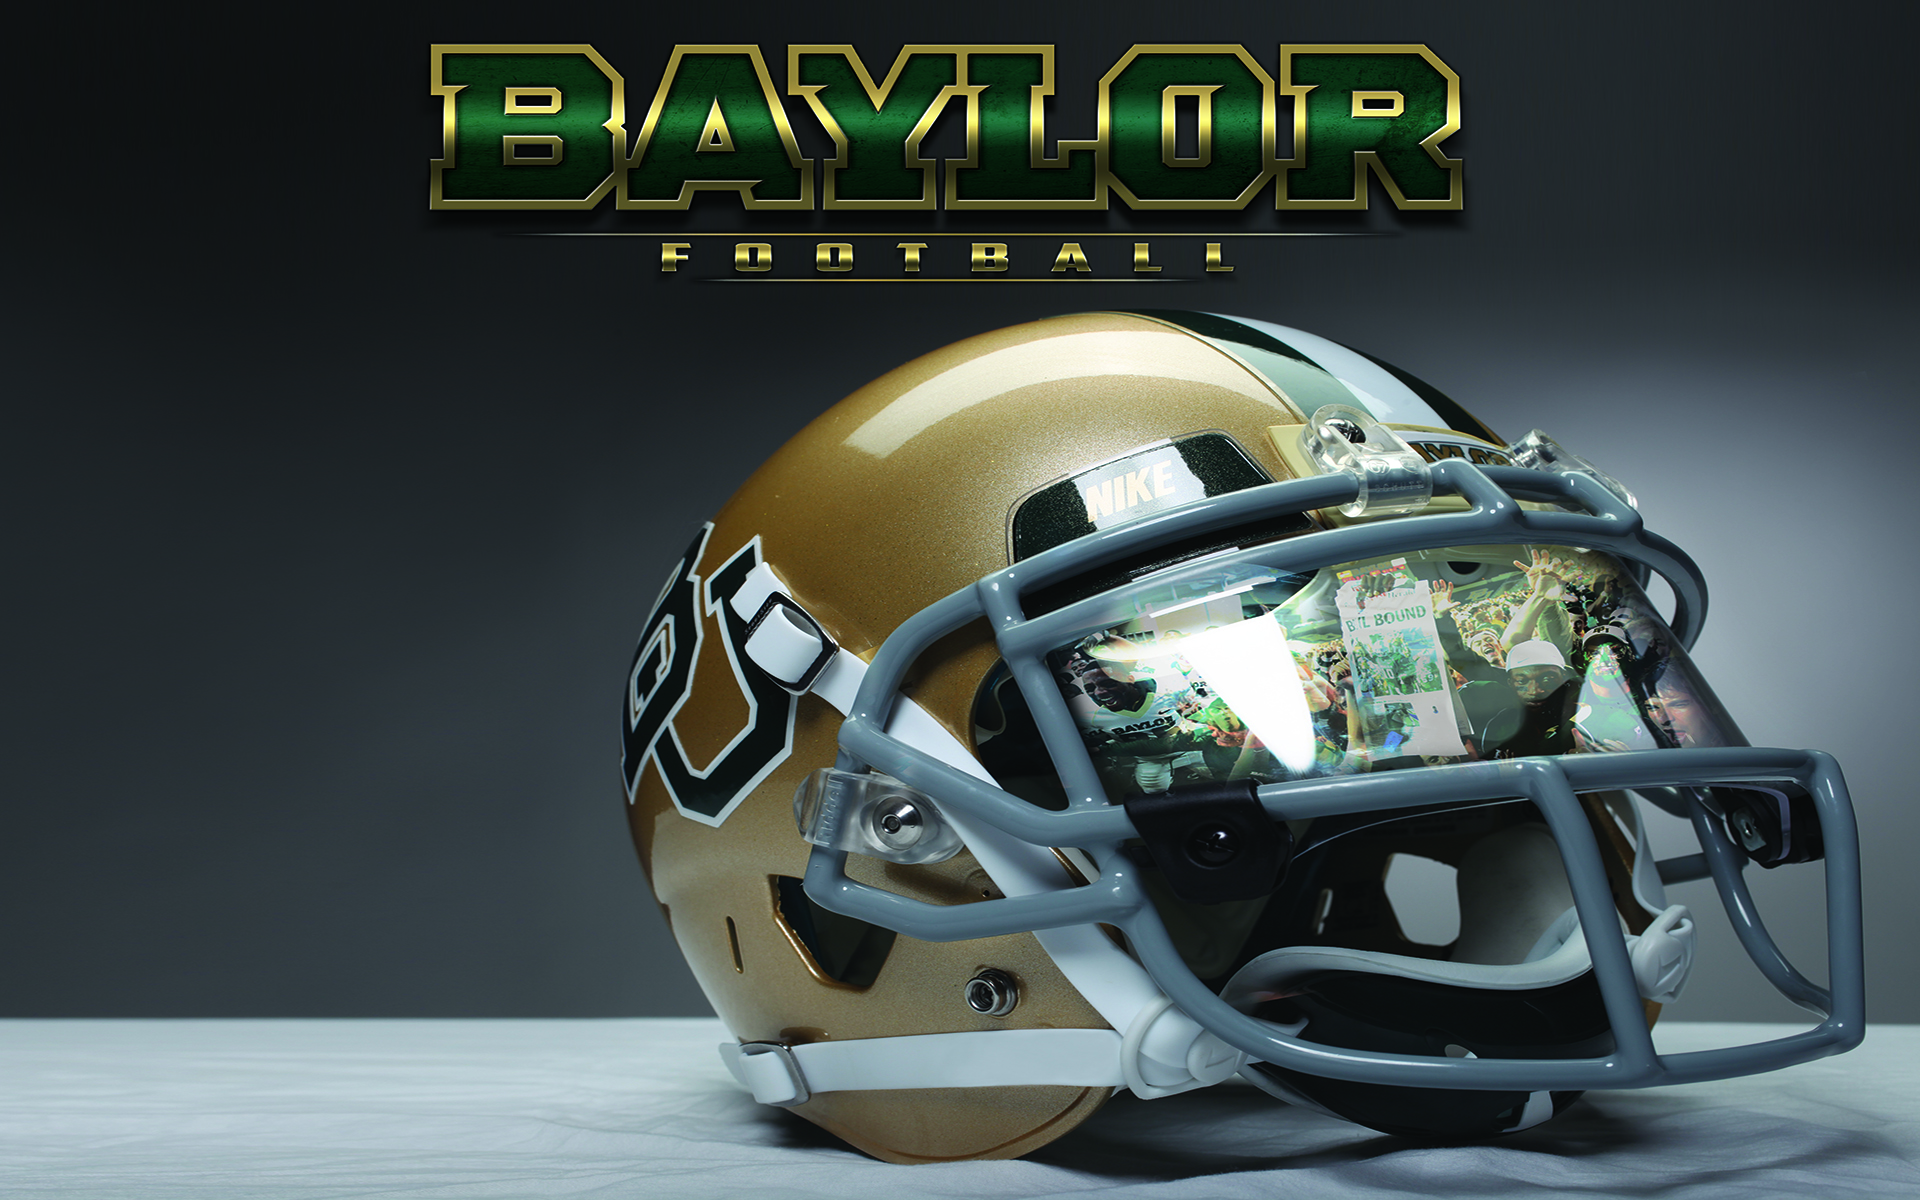 Baylor Wallpaper wwwpixsharkcom   Images Galleries 1920x1200